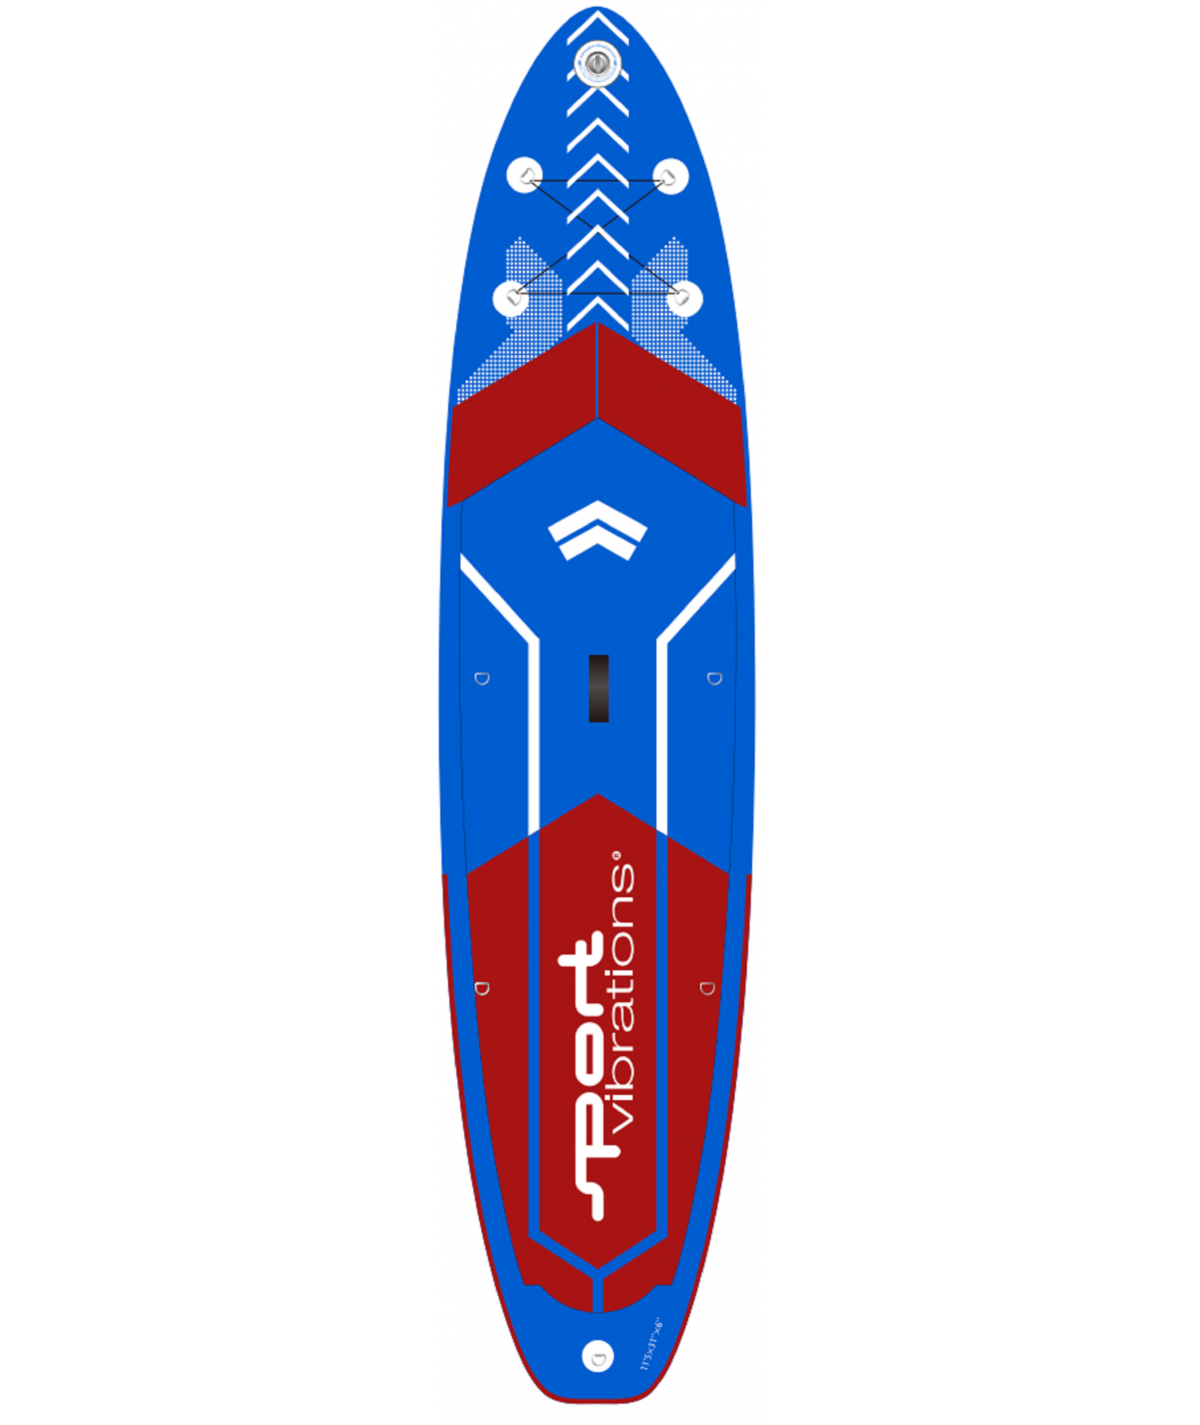 Sport-Vibrations All-Terrain Allround-Touring 11'5 SUP